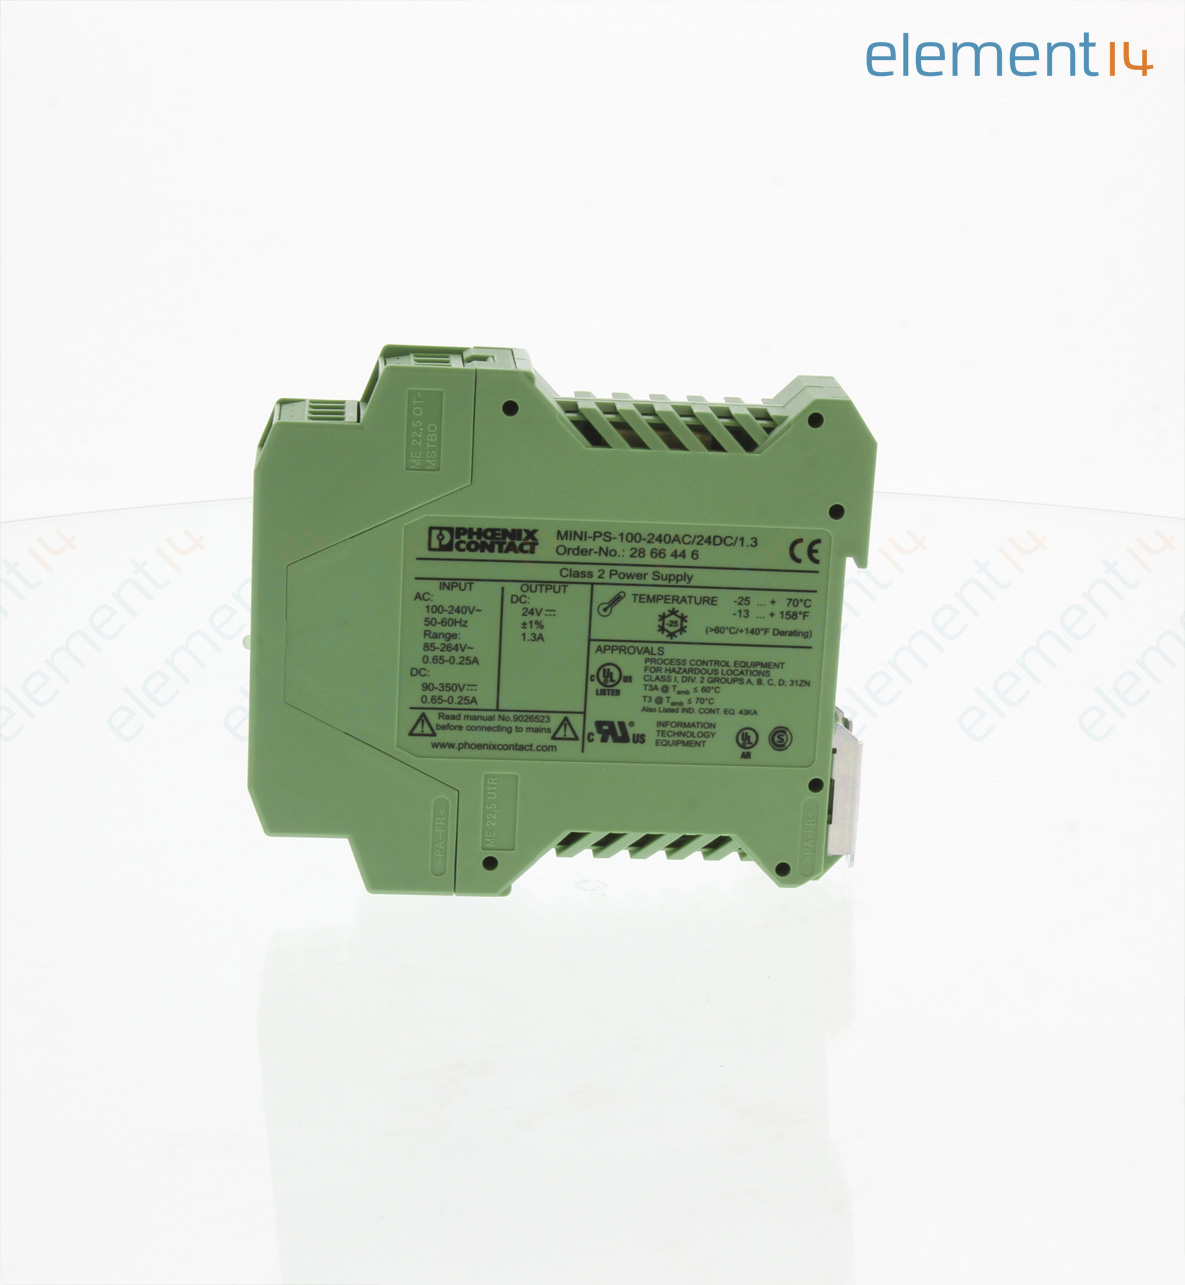 Mini Ps 100 240ac 24dc 13 Phoenix Contact Ac Dc Din Rail Power Circuit It Can Uses With Supply Source 24vdc And Adjust Voltage Add To Compare